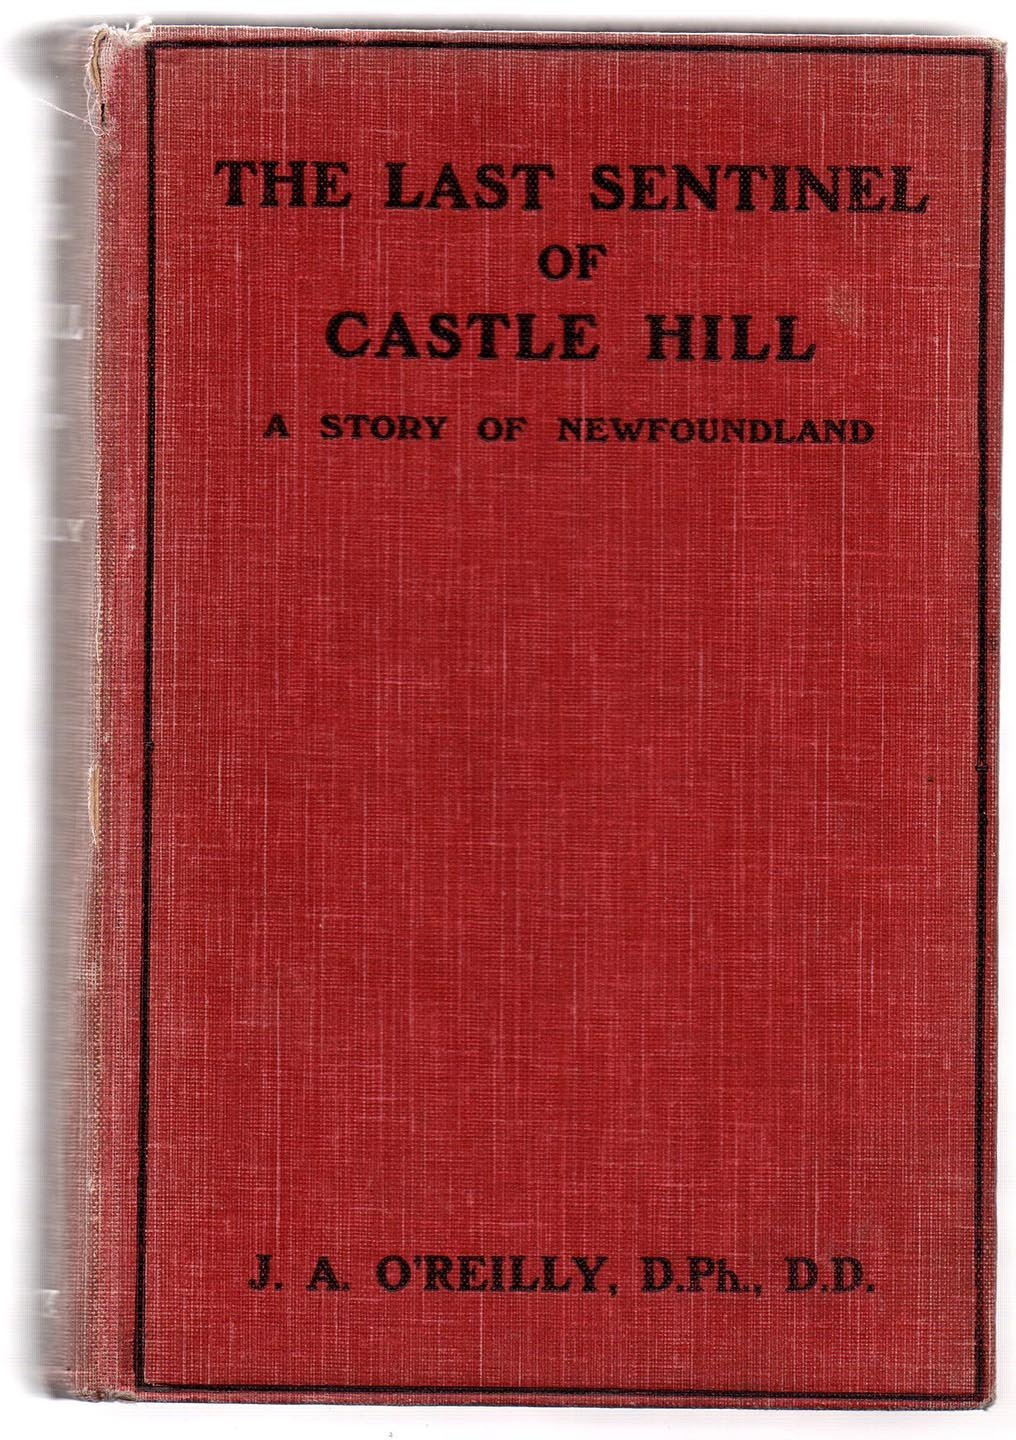 The Last Sentinel of Castle Hill: A Story of Newfoundland